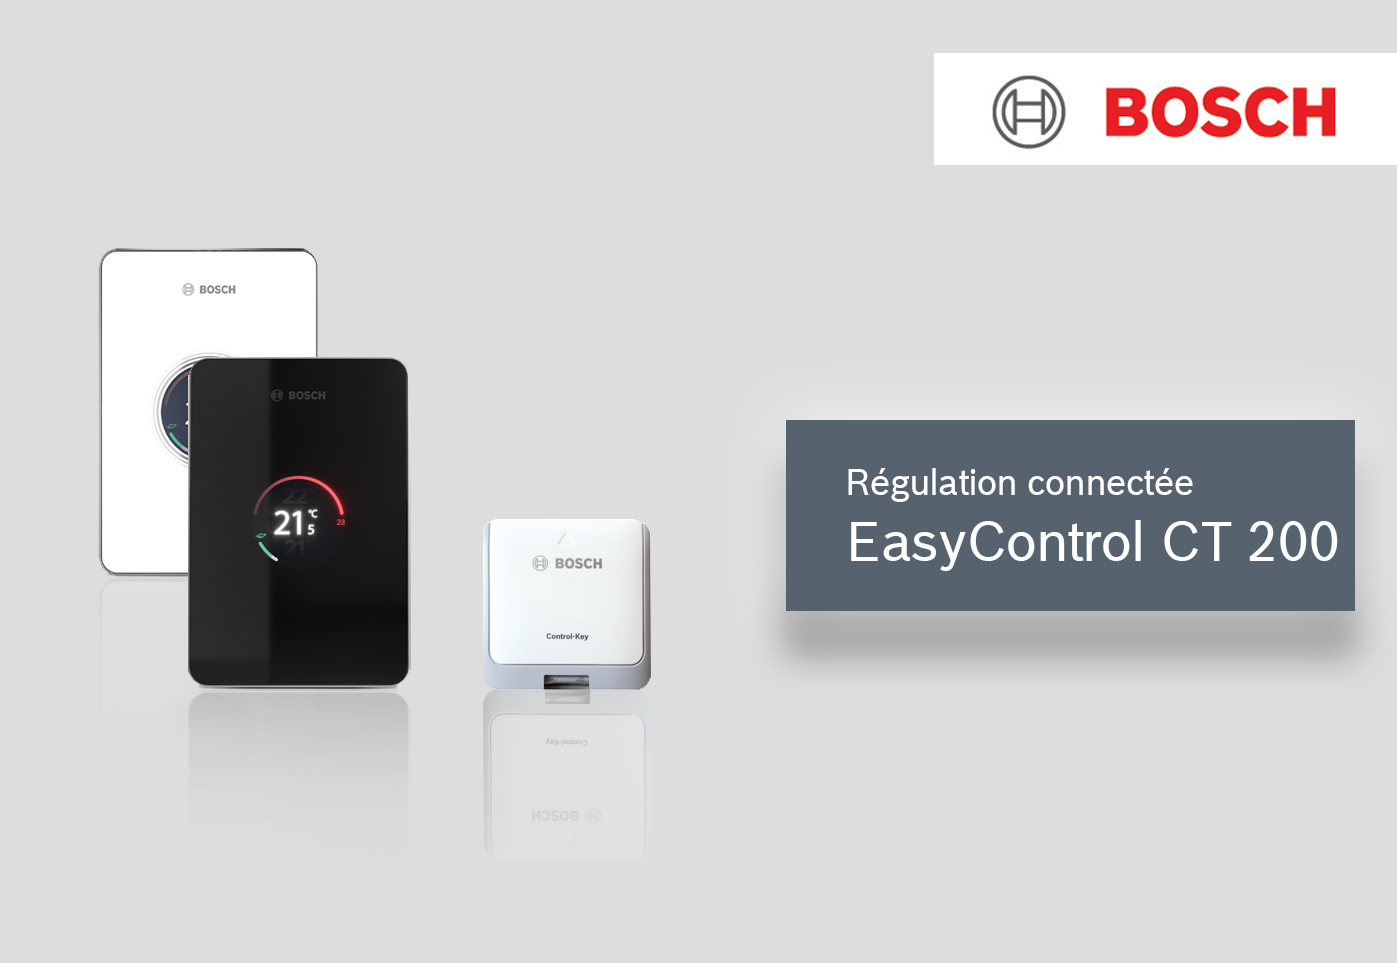 EasyControl CT 200